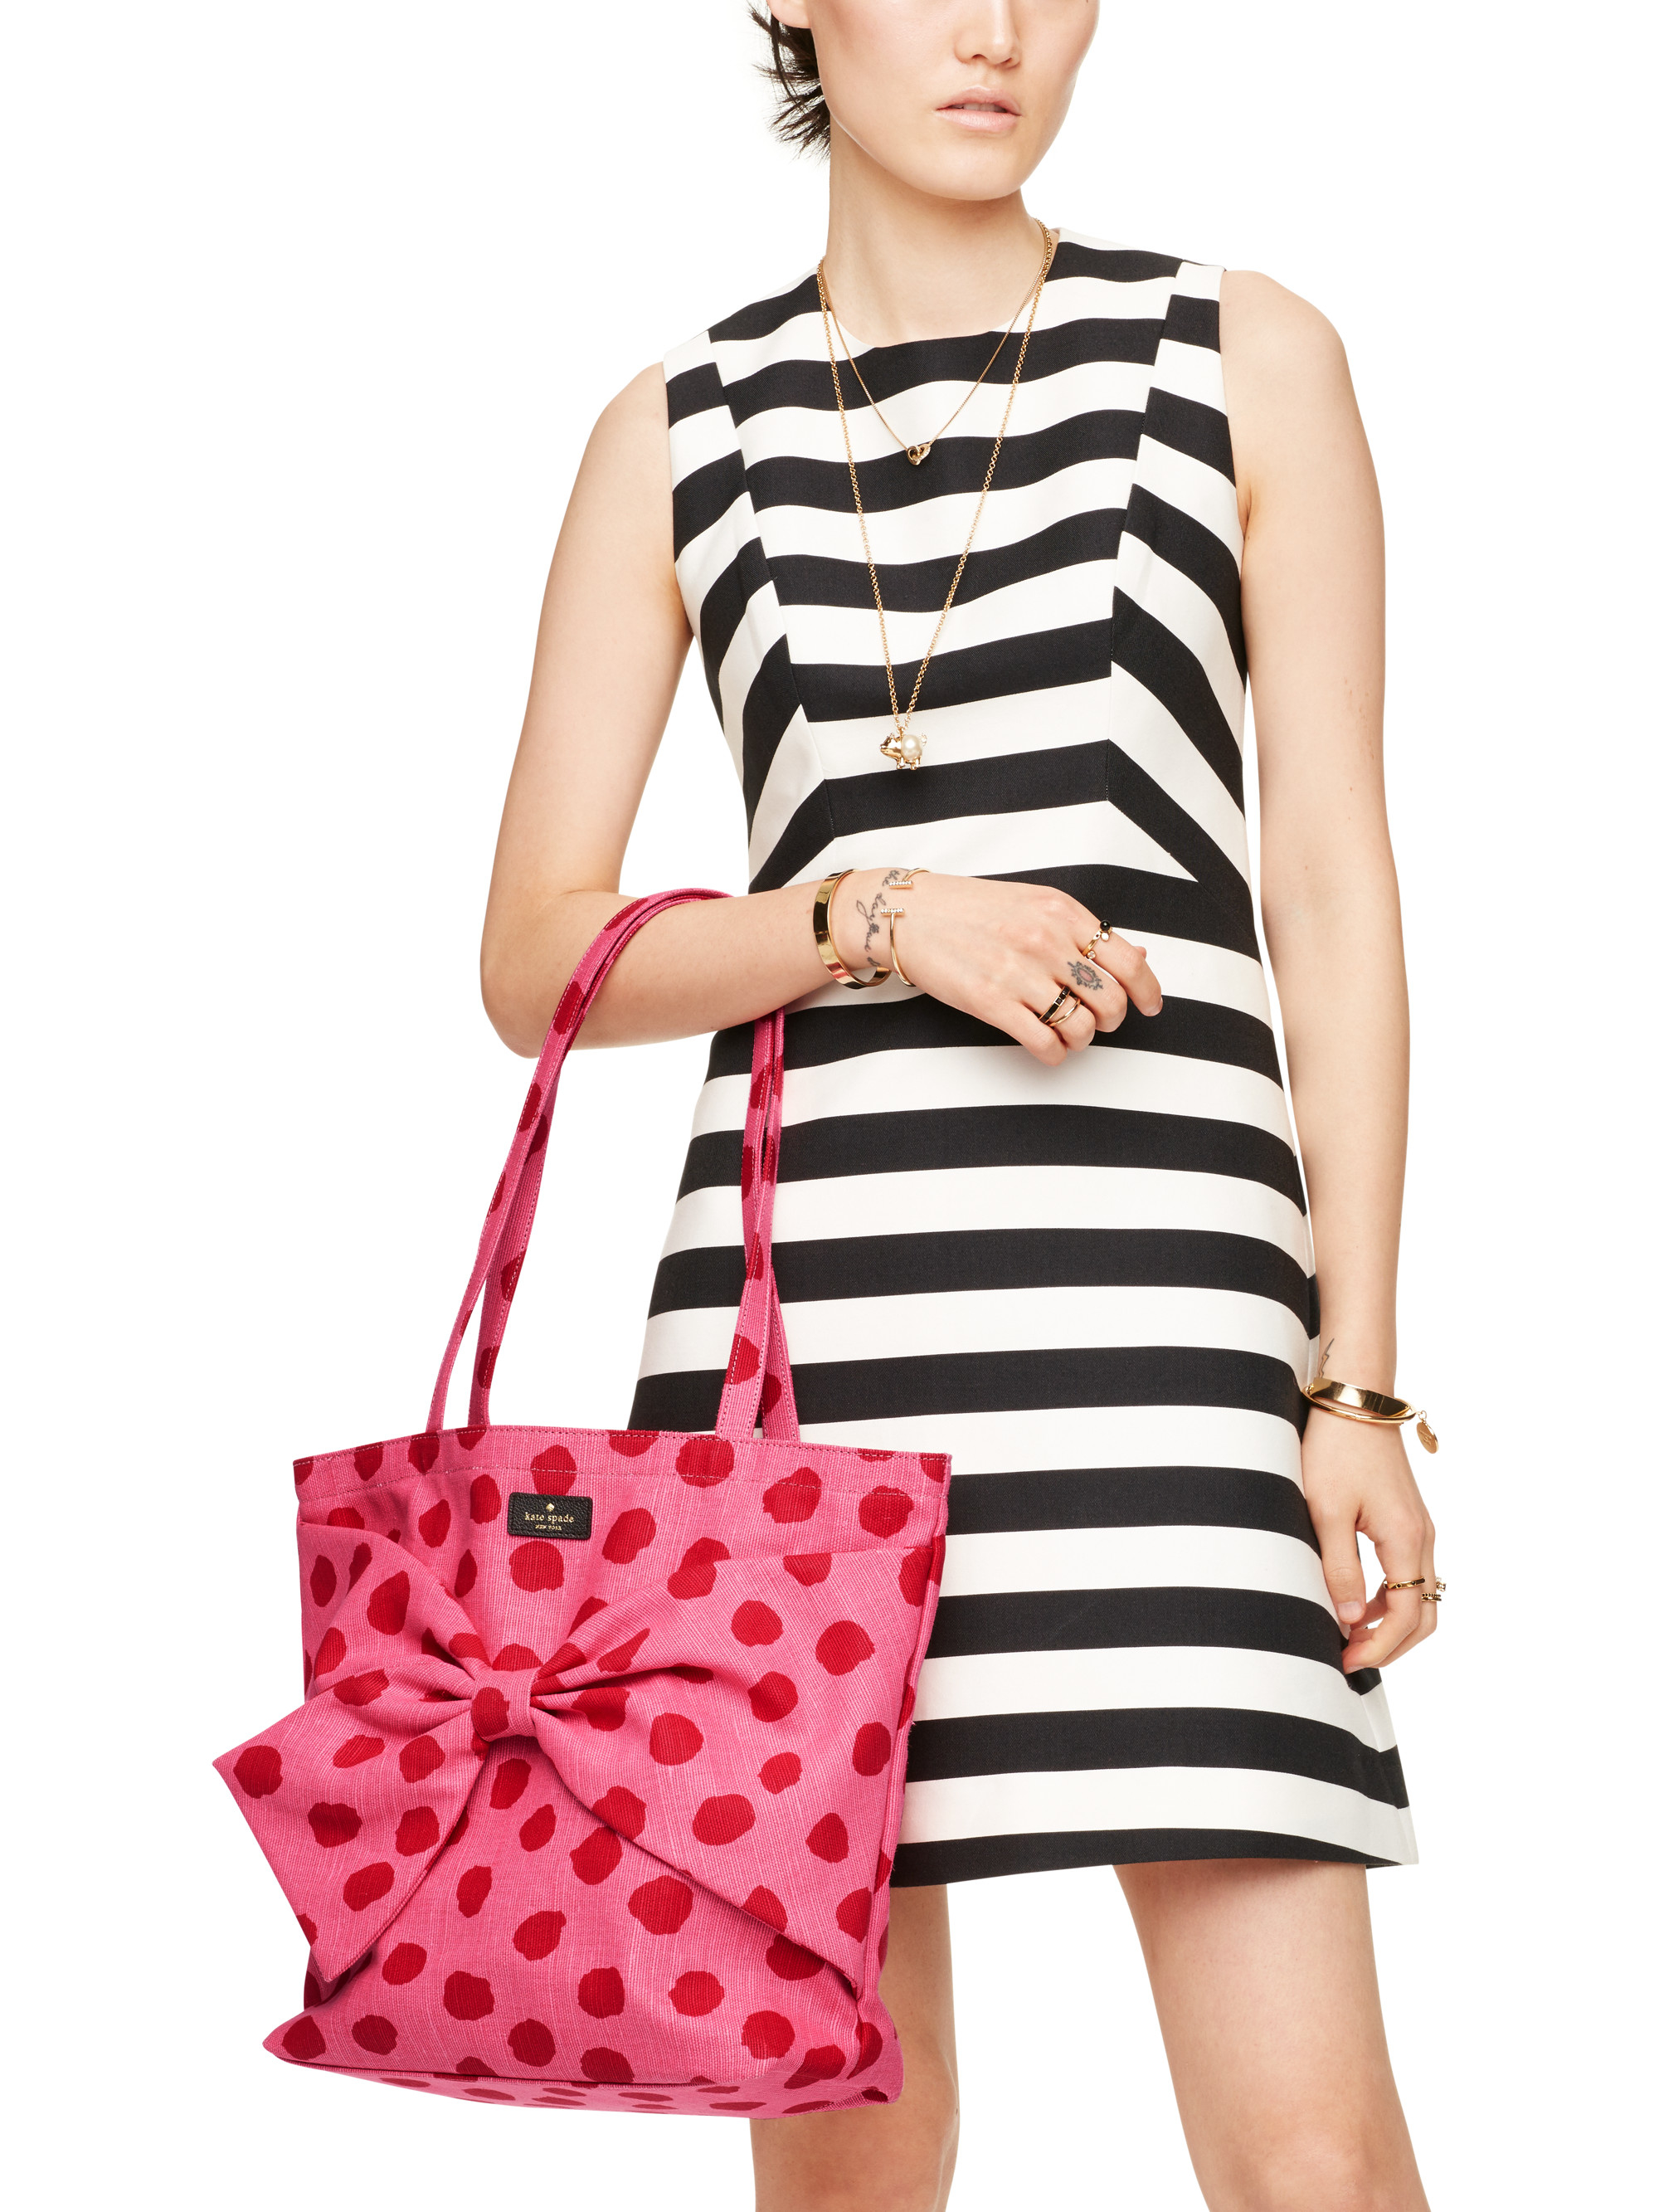 Kate Spade On Purpose Canvas Tote in Pink Dot (Pink)